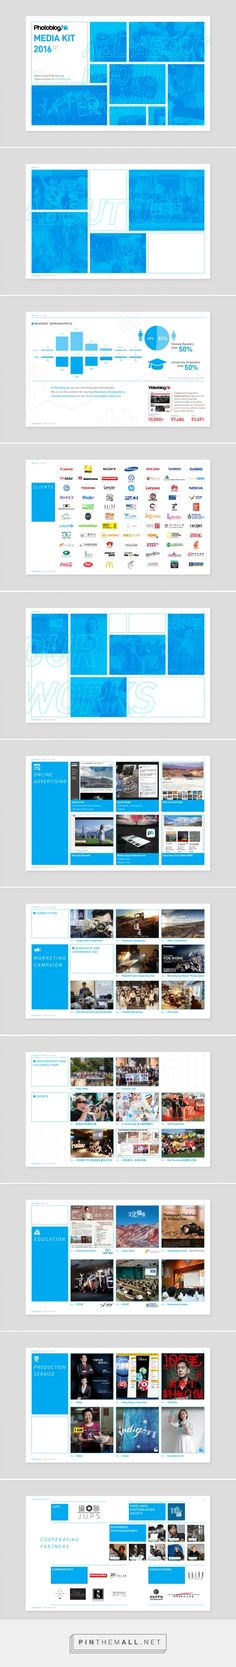 Photoblog.hk Media Kit - Fundamental  |  http://fundamental-studio.com/Photoblog-hk-Media-Kit - created via https://pinthemall.net